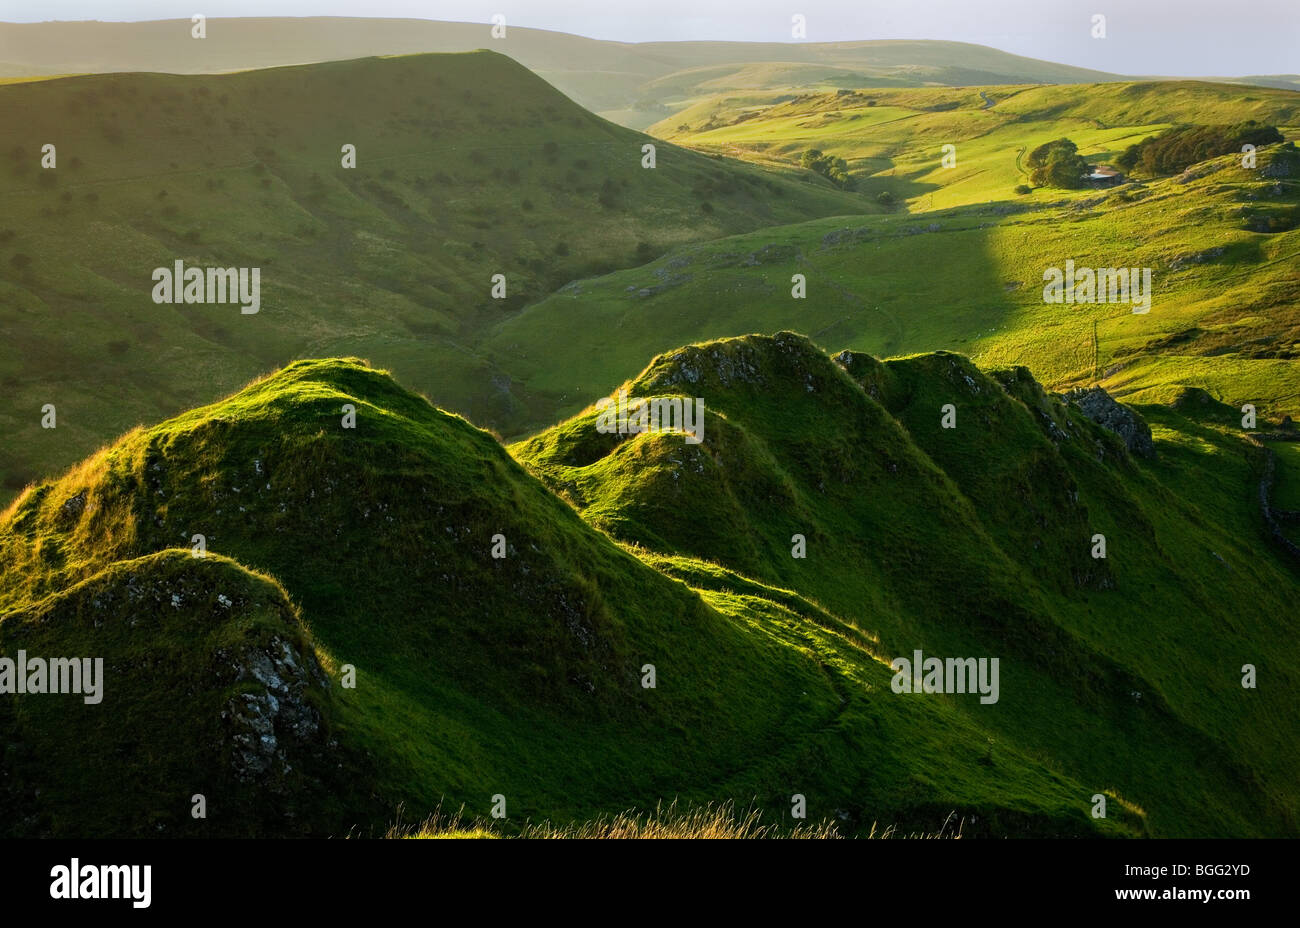 Evening light on the jagged ridge of Chrome Hill or the Dragon's Back in the Peak District - Stock Image